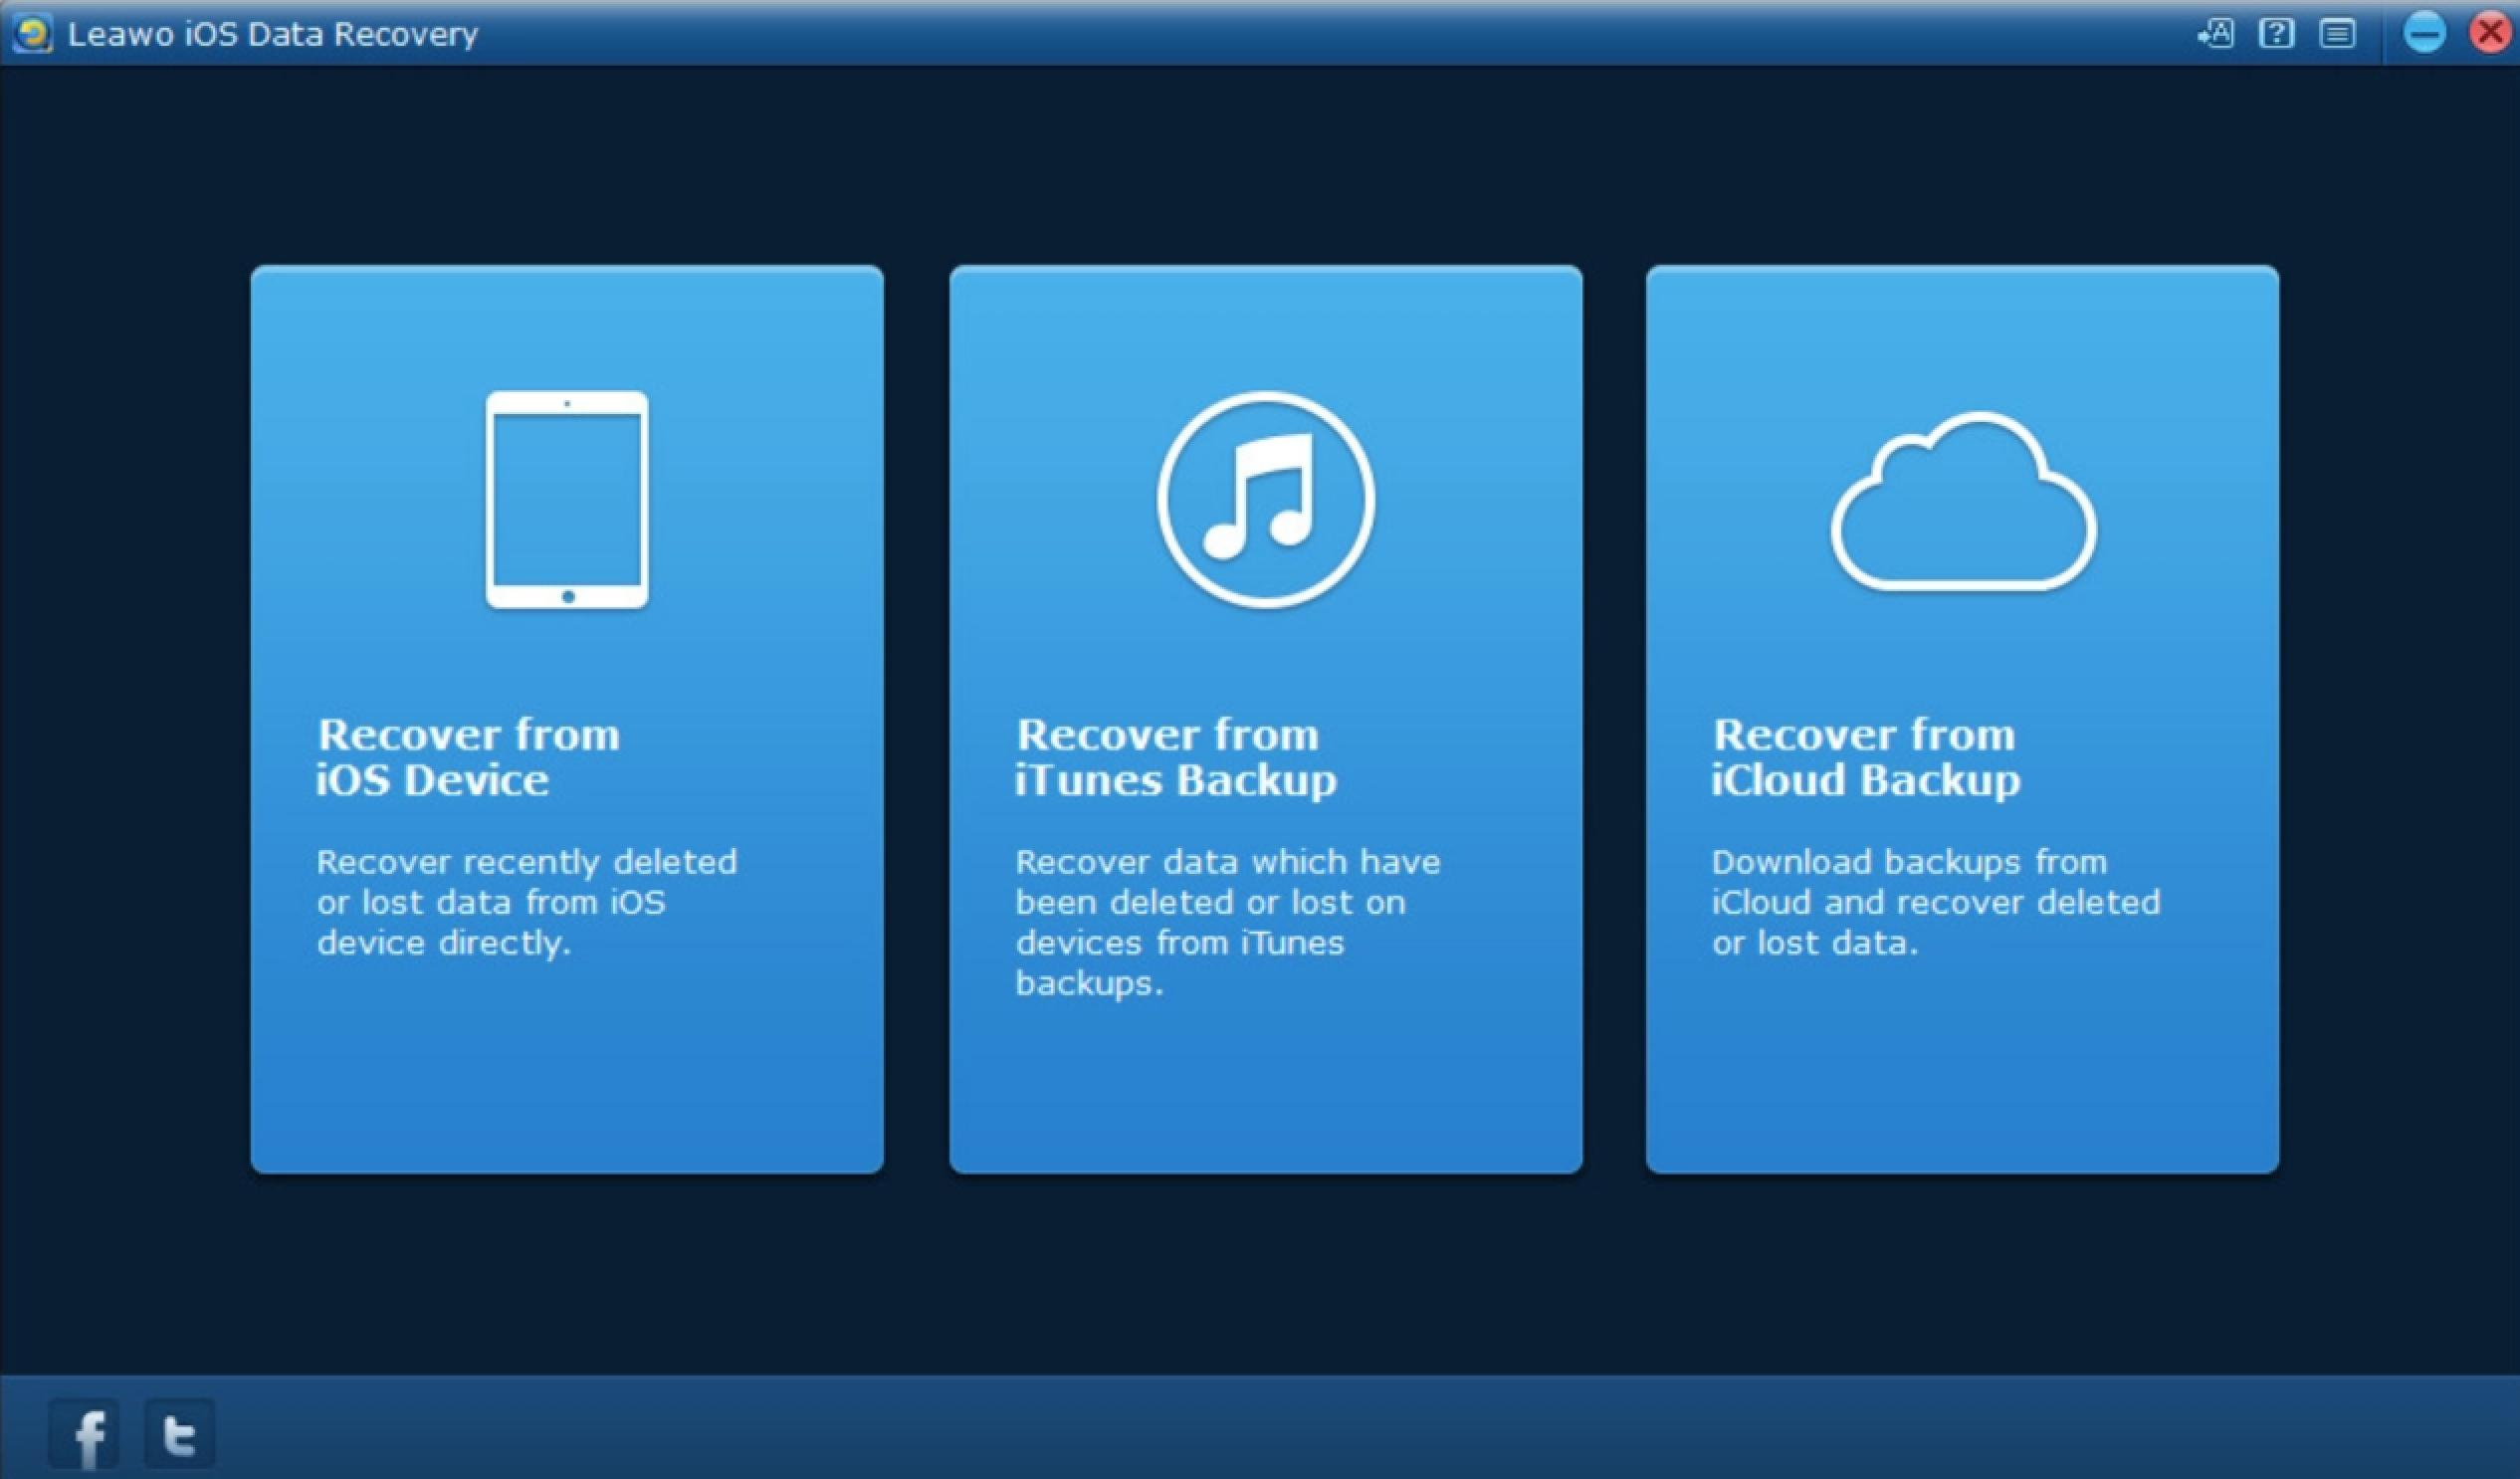 how-to-recover-data-on-Leawo-iOS-Data-Recovery 01